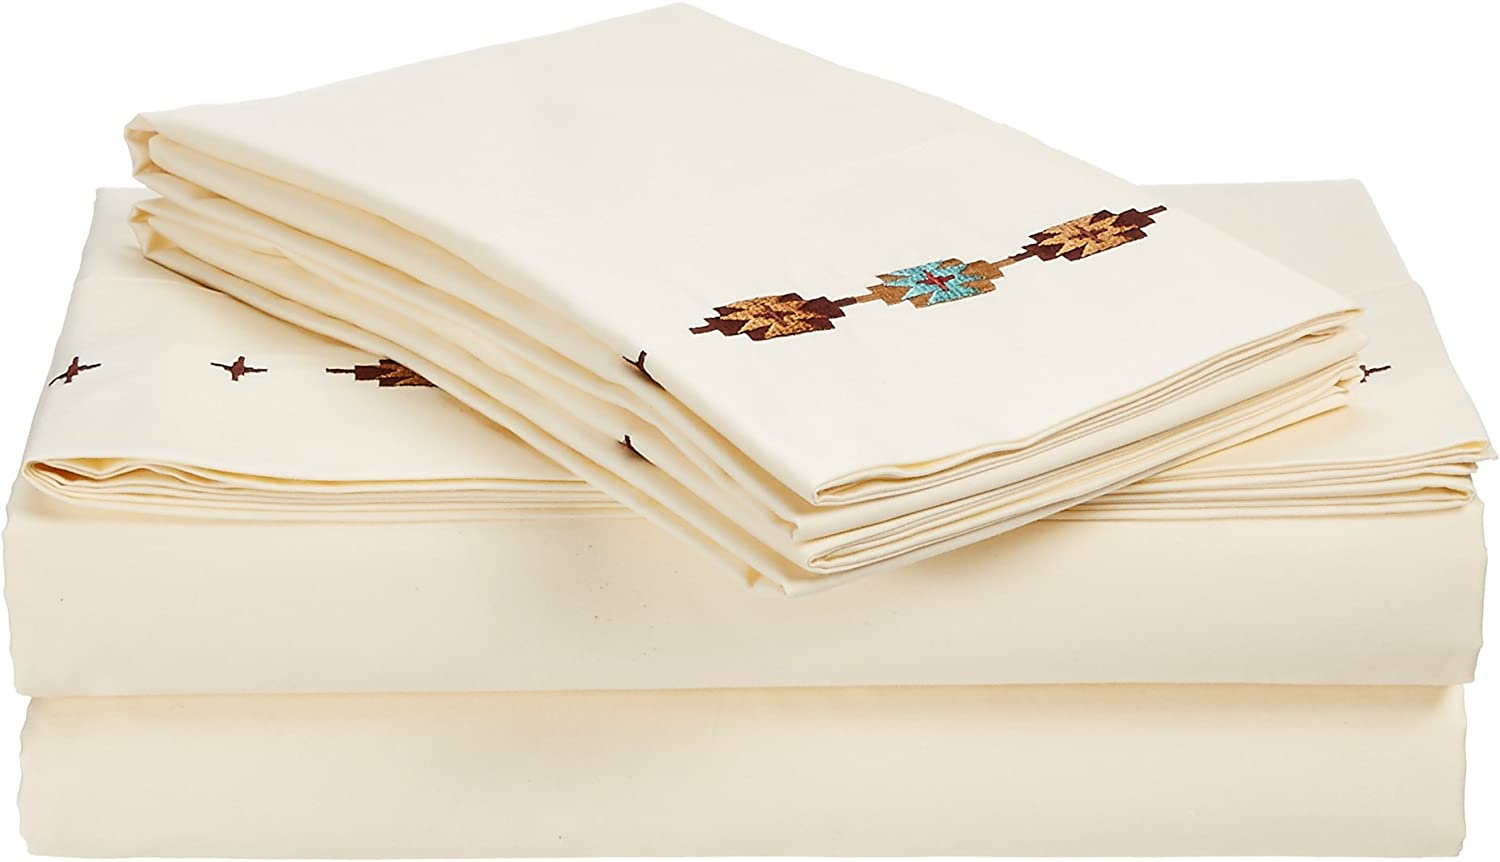 HiEnd Accents Embroidered Navajo Sheet Set, King, Cream